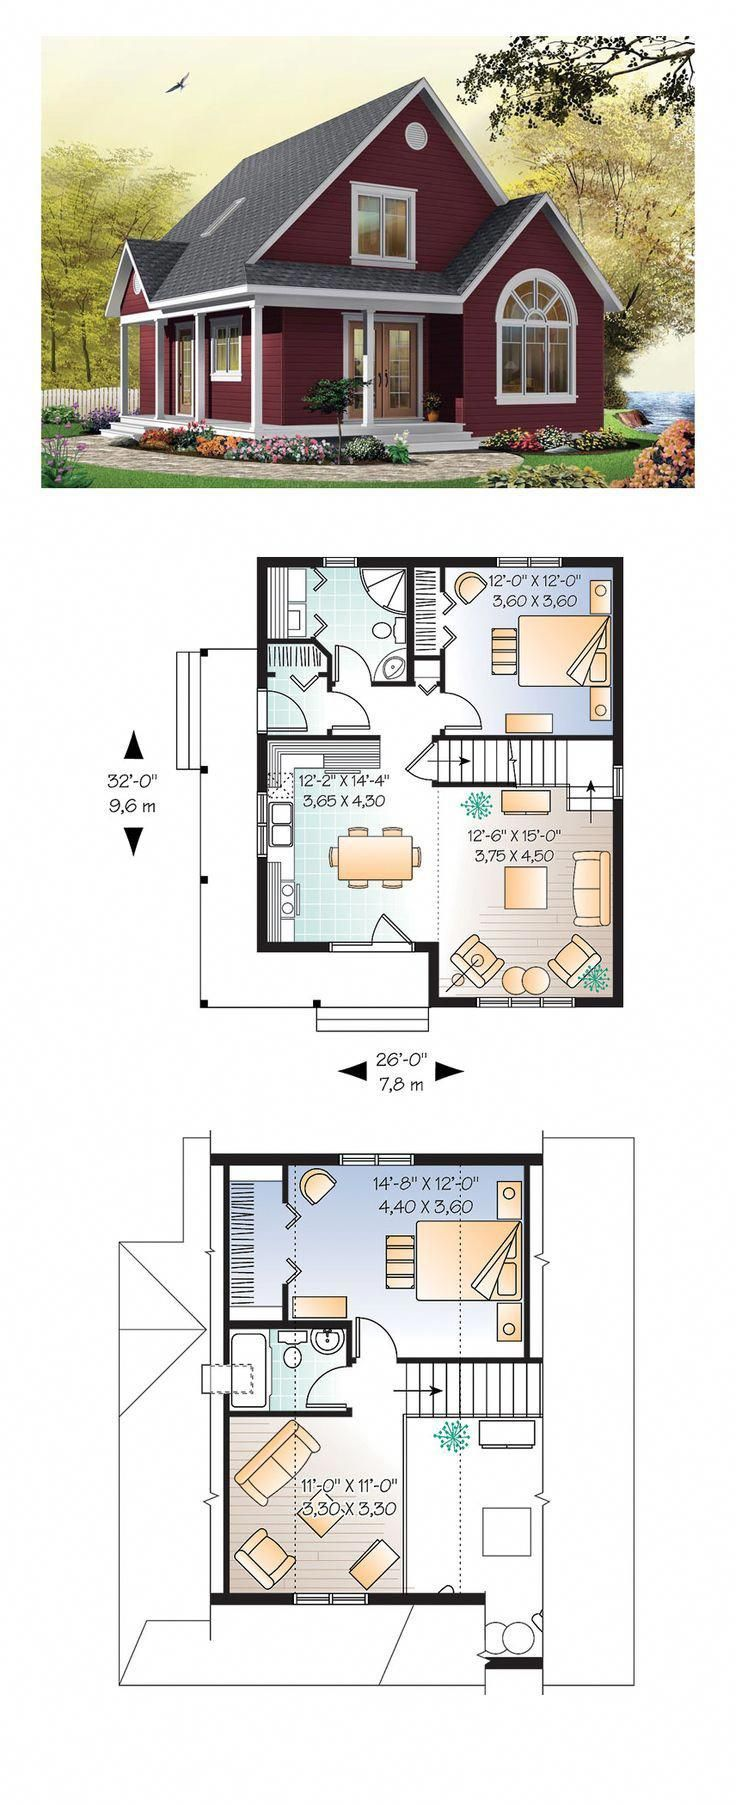 Cottage style cool house plan id chp total living area sq ft bedrooms and bathrooms cottageplan loveinteriorplanning also rh pinterest